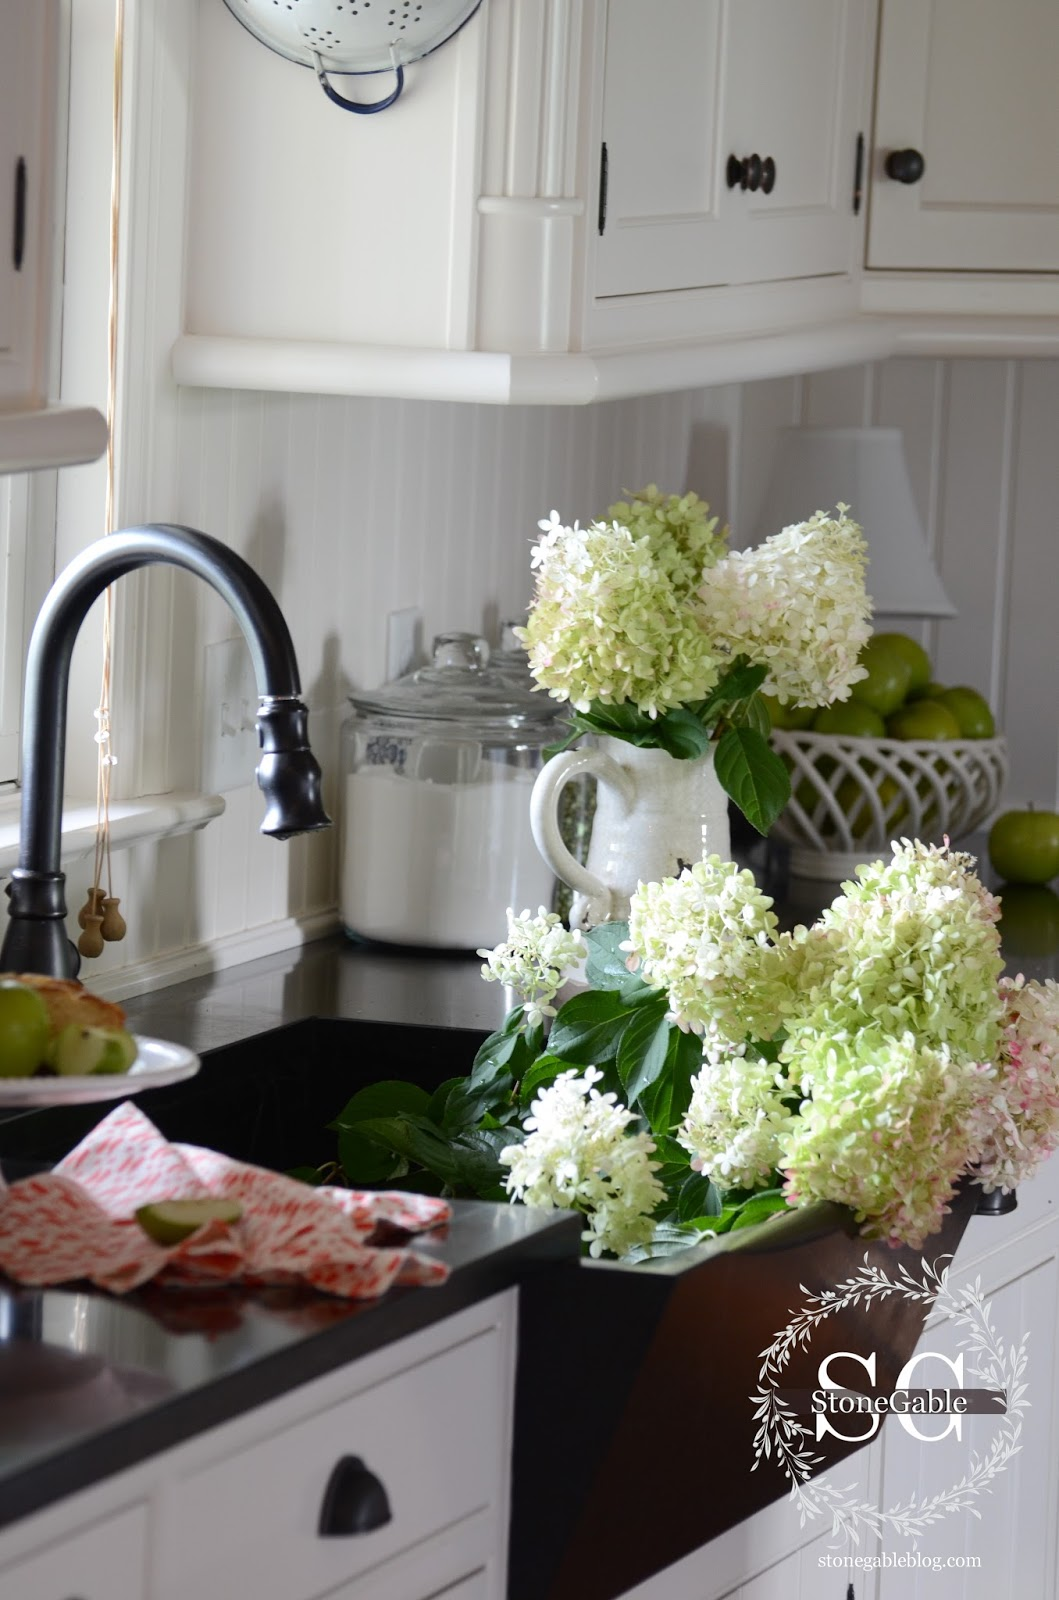 details about kitchen flowers - photo #35